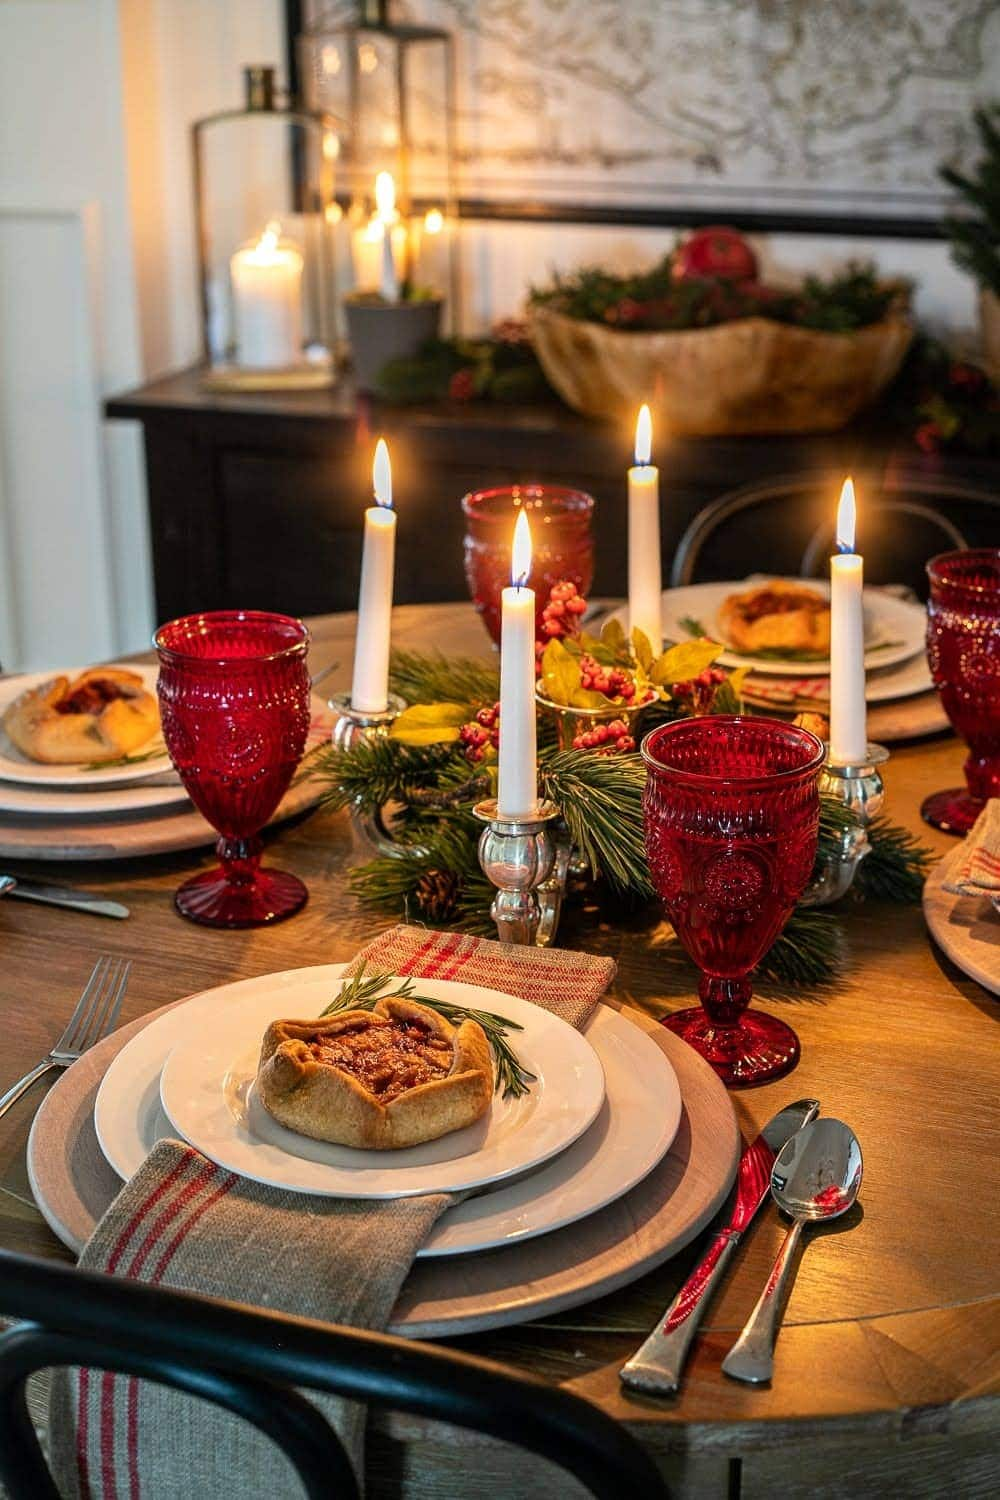 Swedish Christmas centerpiece using an advent candelabra to mimic the St. Lucia crown